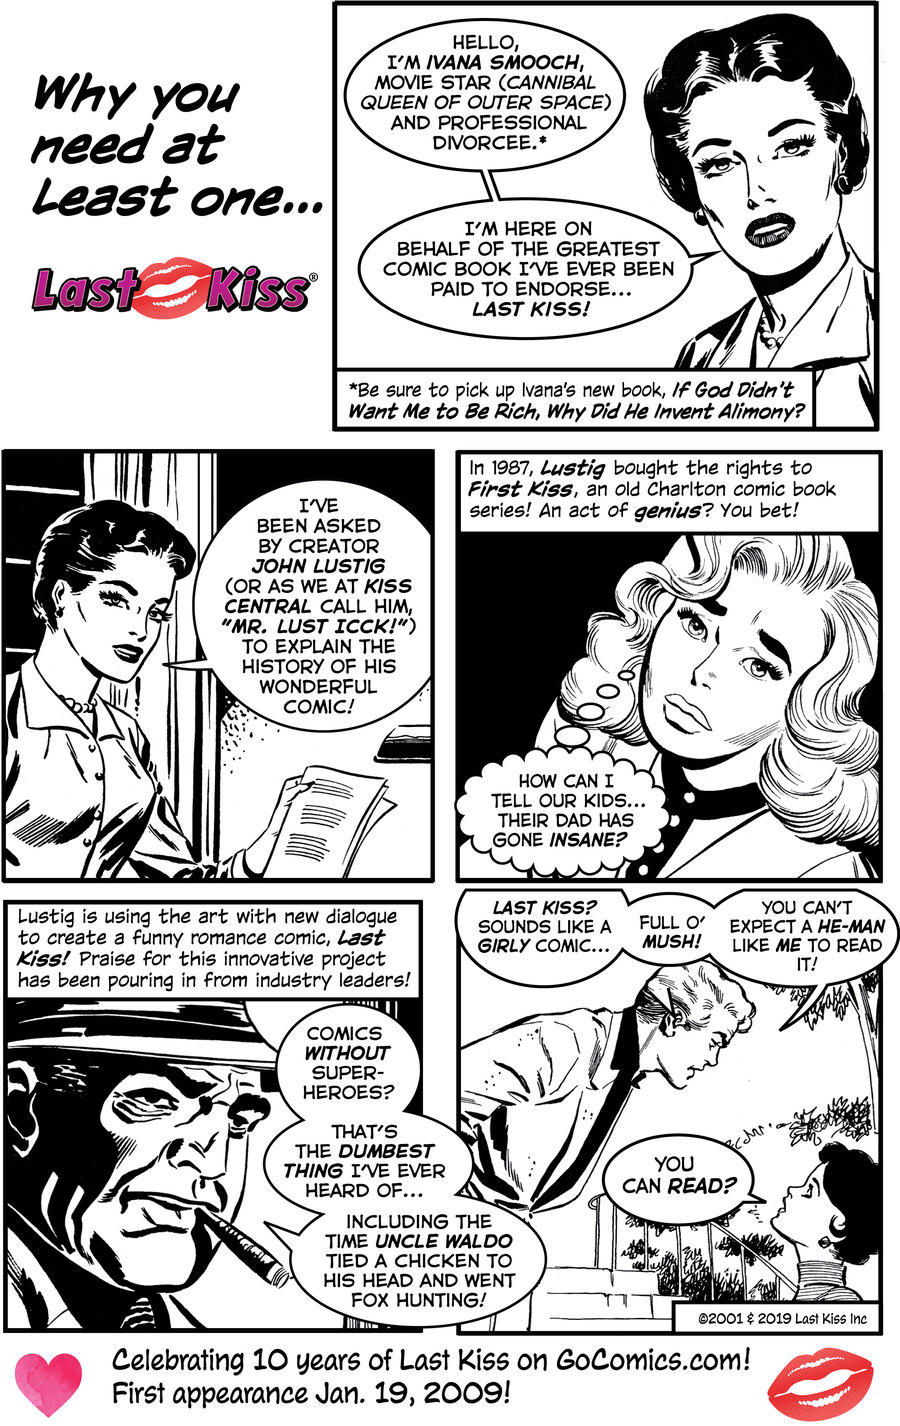 Last Kiss by John Lustig for January 18, 2019